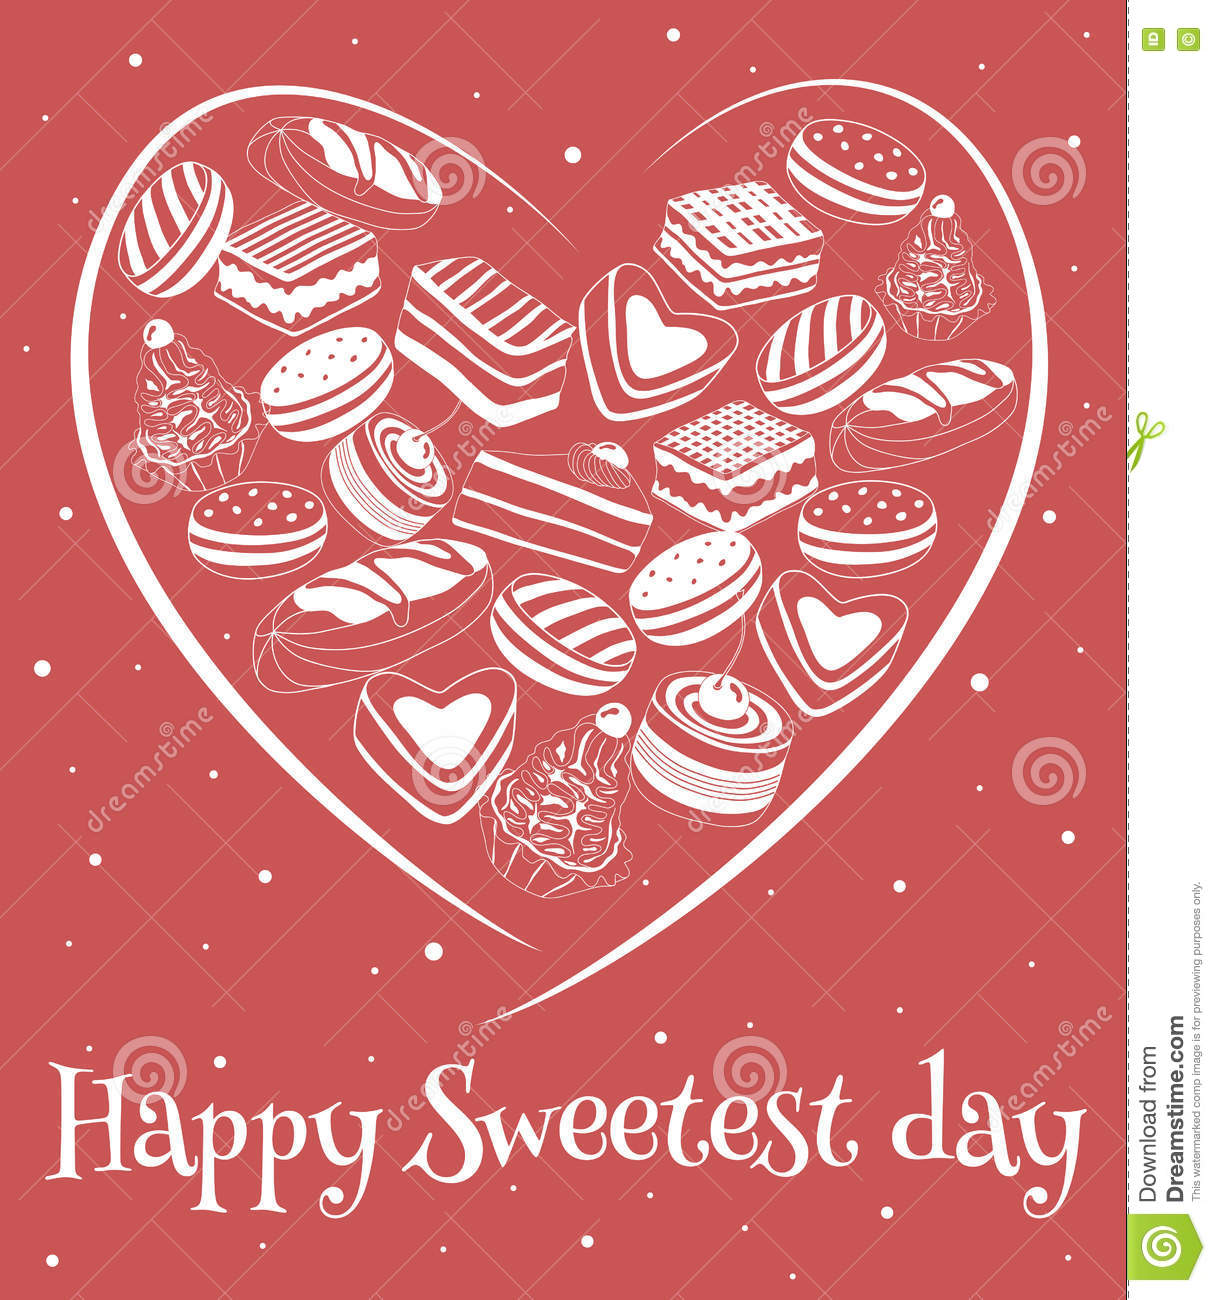 Happy Sweetest Day Card Stock Vector Illustration Of Cooky 78610735